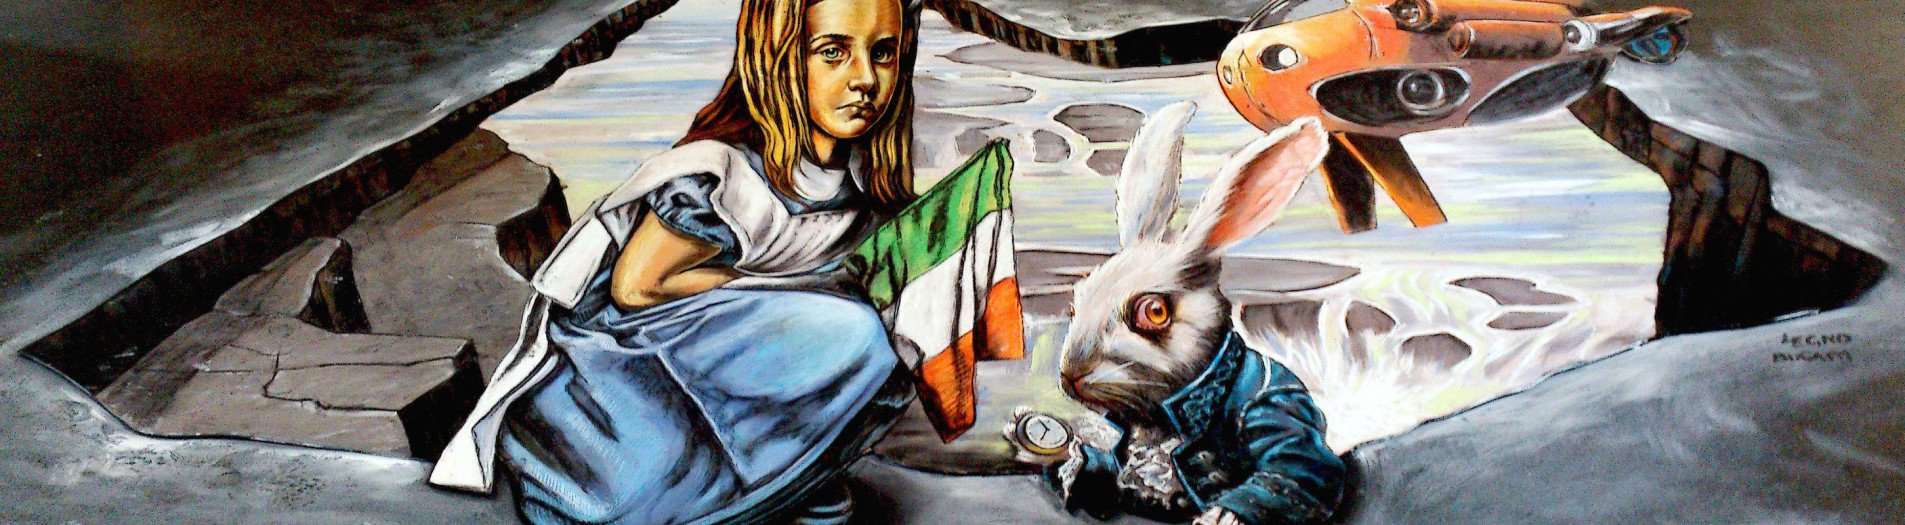 3D Pavement Art in Ireland again! Vera & Luigi at Wicklow Arts Fest 2014